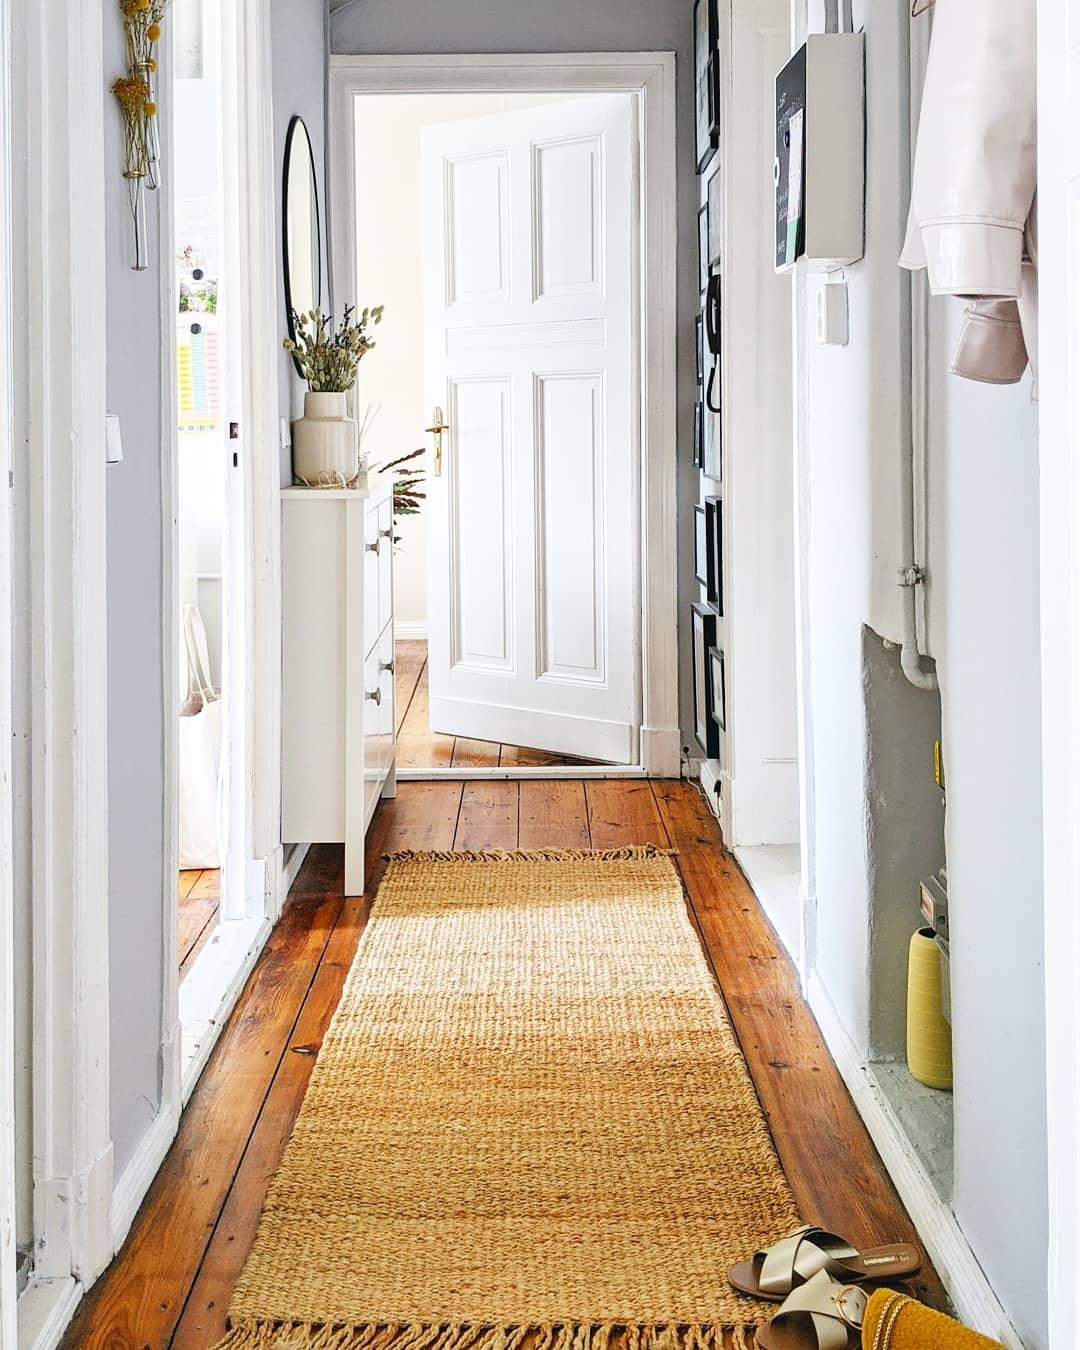 Home is where your ❤️ is. #couchstyle #hallway #entry #entryway #altbau #flur #scandistyle